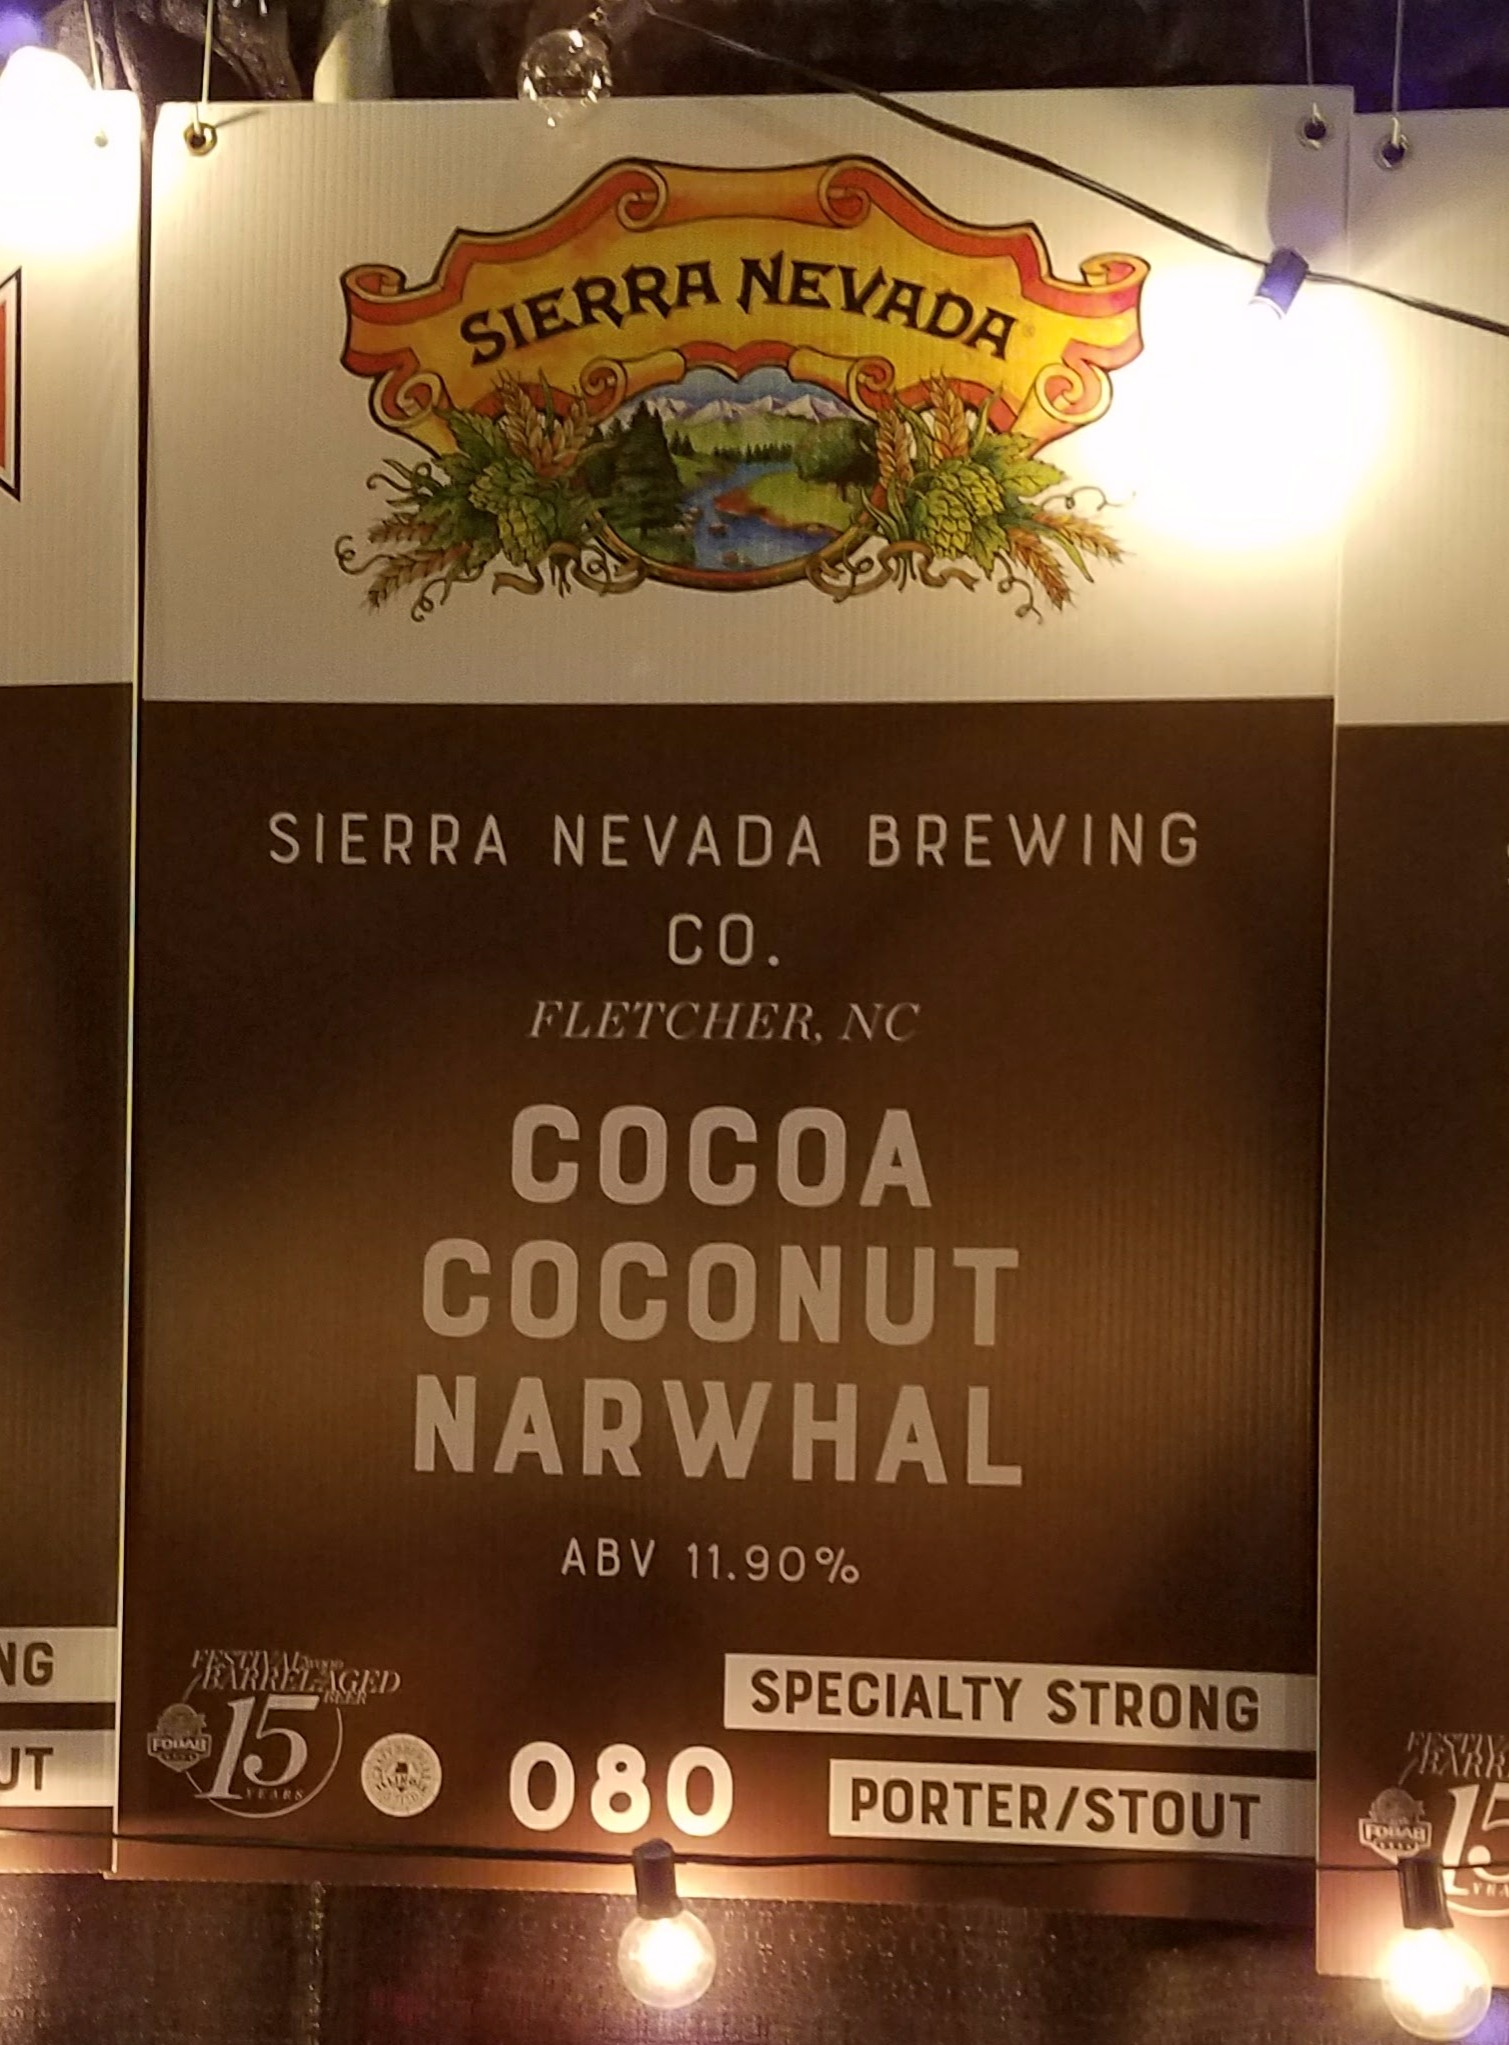 BCBS Alternatives - Sierra Nevada Cocoa Coconut Narwhal aged in Bourbon Barrels